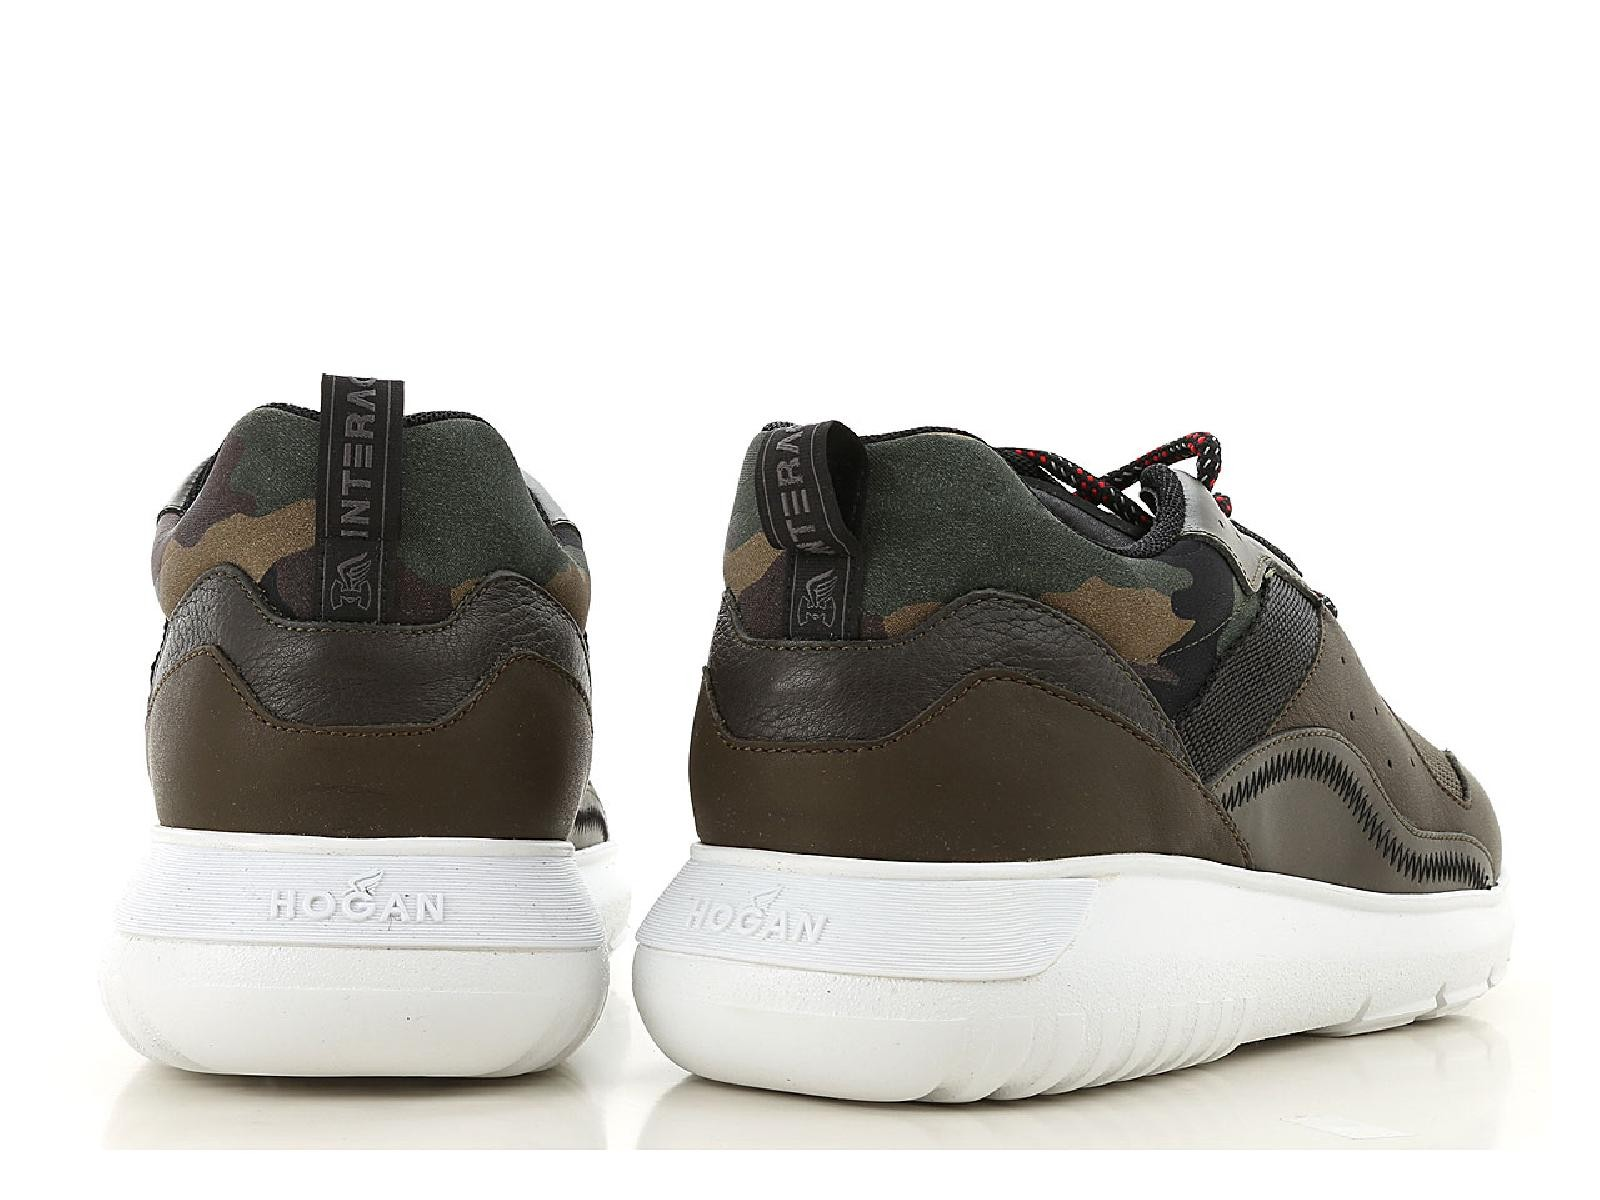 a3058ac79abe5 Hogan INTERACTIVE3 Men's sneakers shoes in camouflage fabric and ...